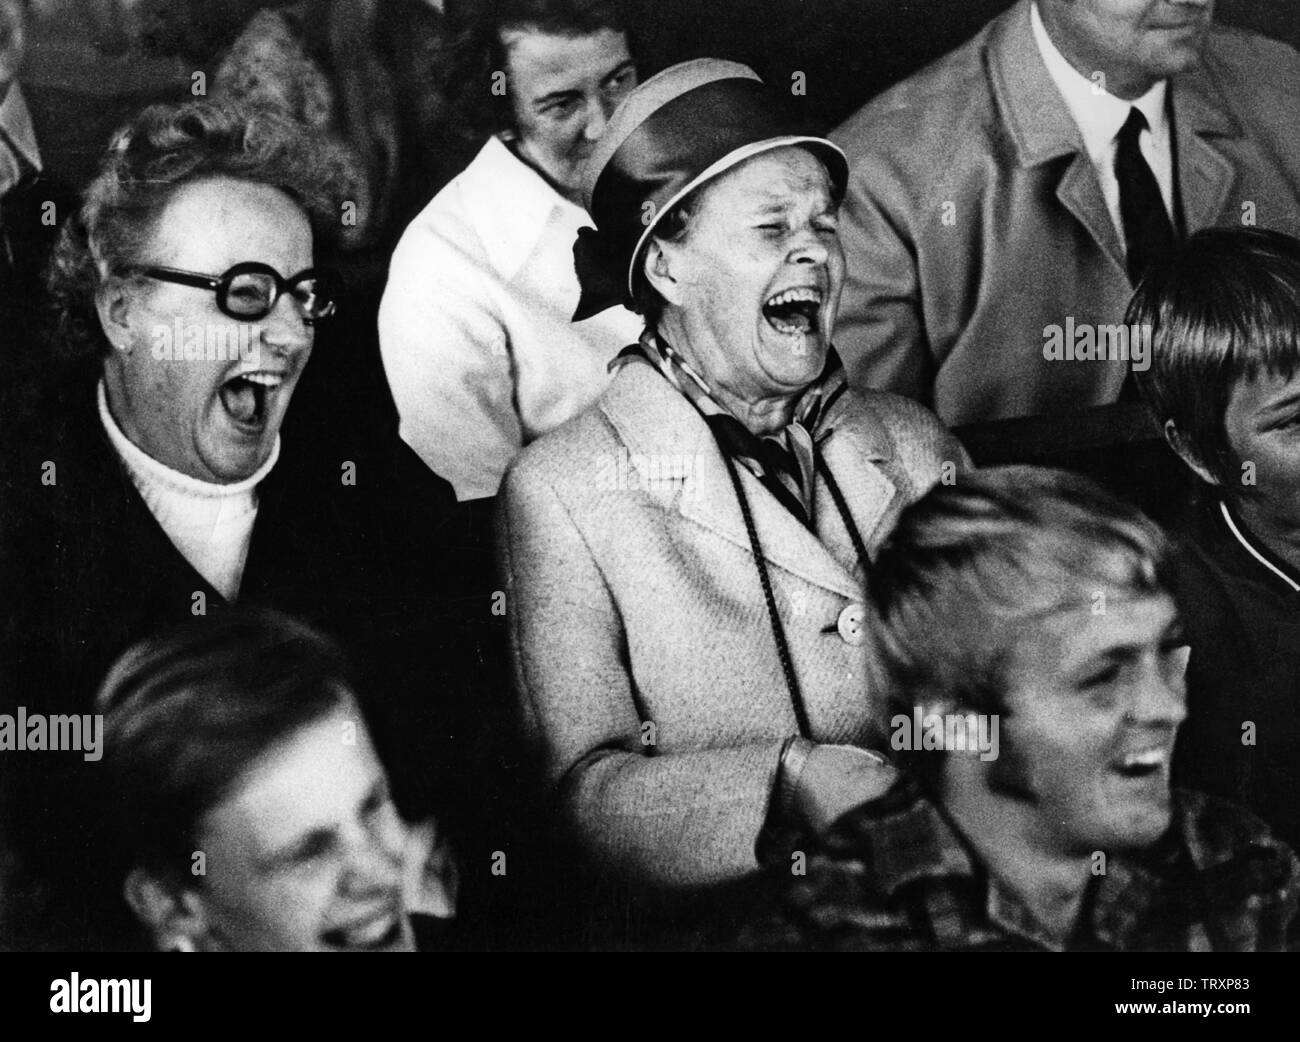 Laughing Audience High Resolution Stock Photography and Images - Alamy